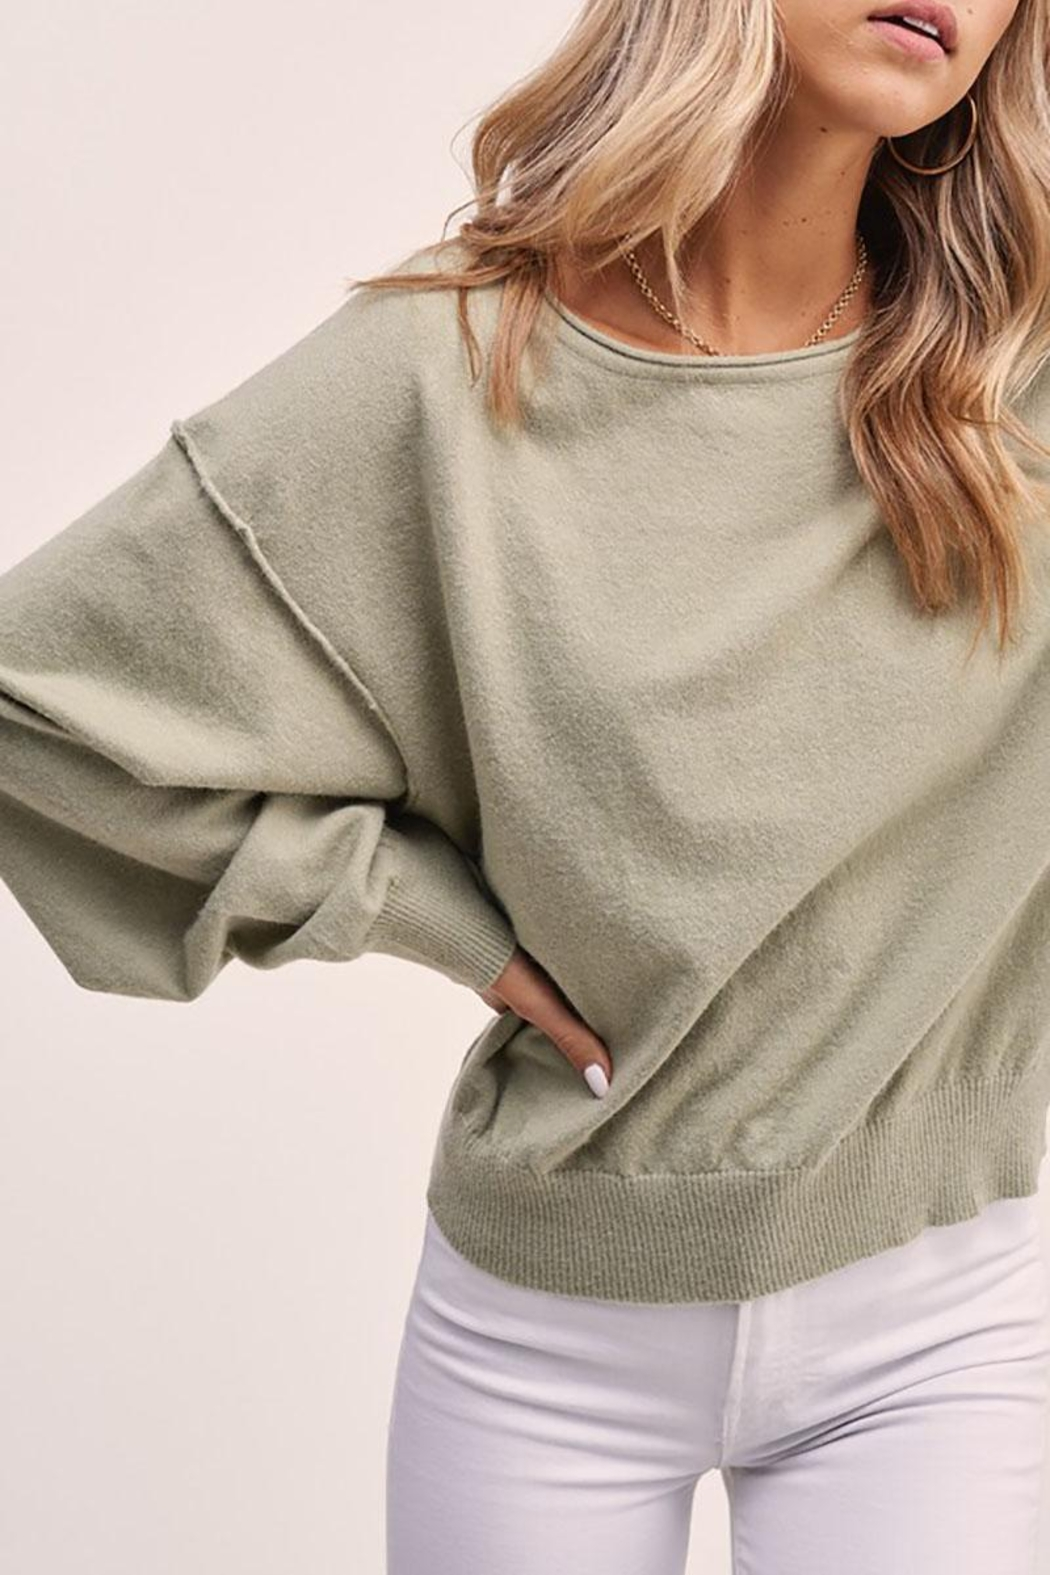 Mint Cloud Boutique Solid Boat Neck Sweater Top - Side Cropped Image